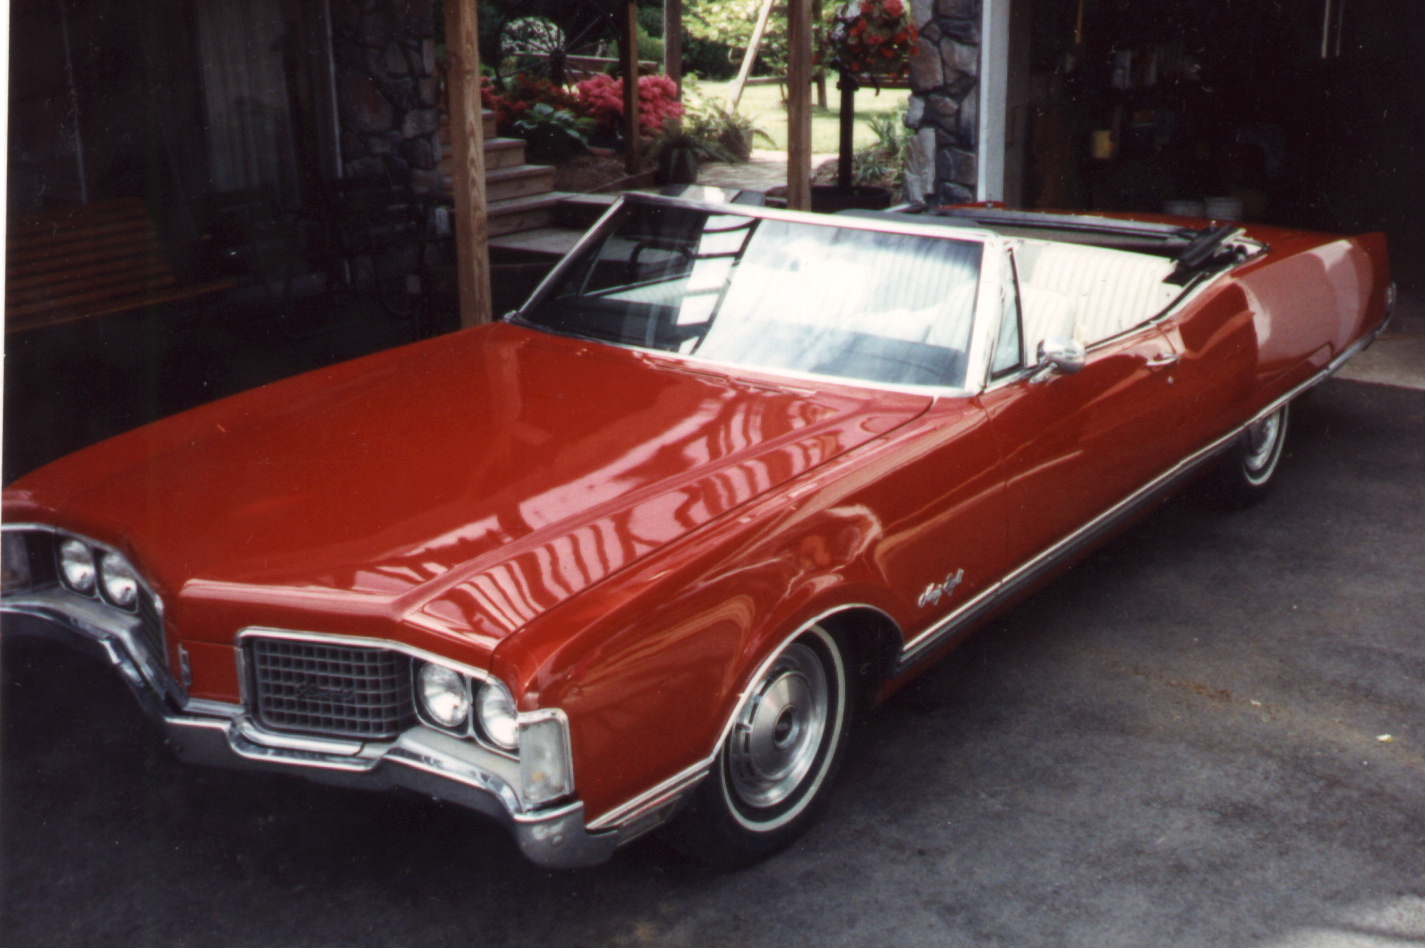 IMCDb.org: 1968 Oldsmobile 98 Convertible in